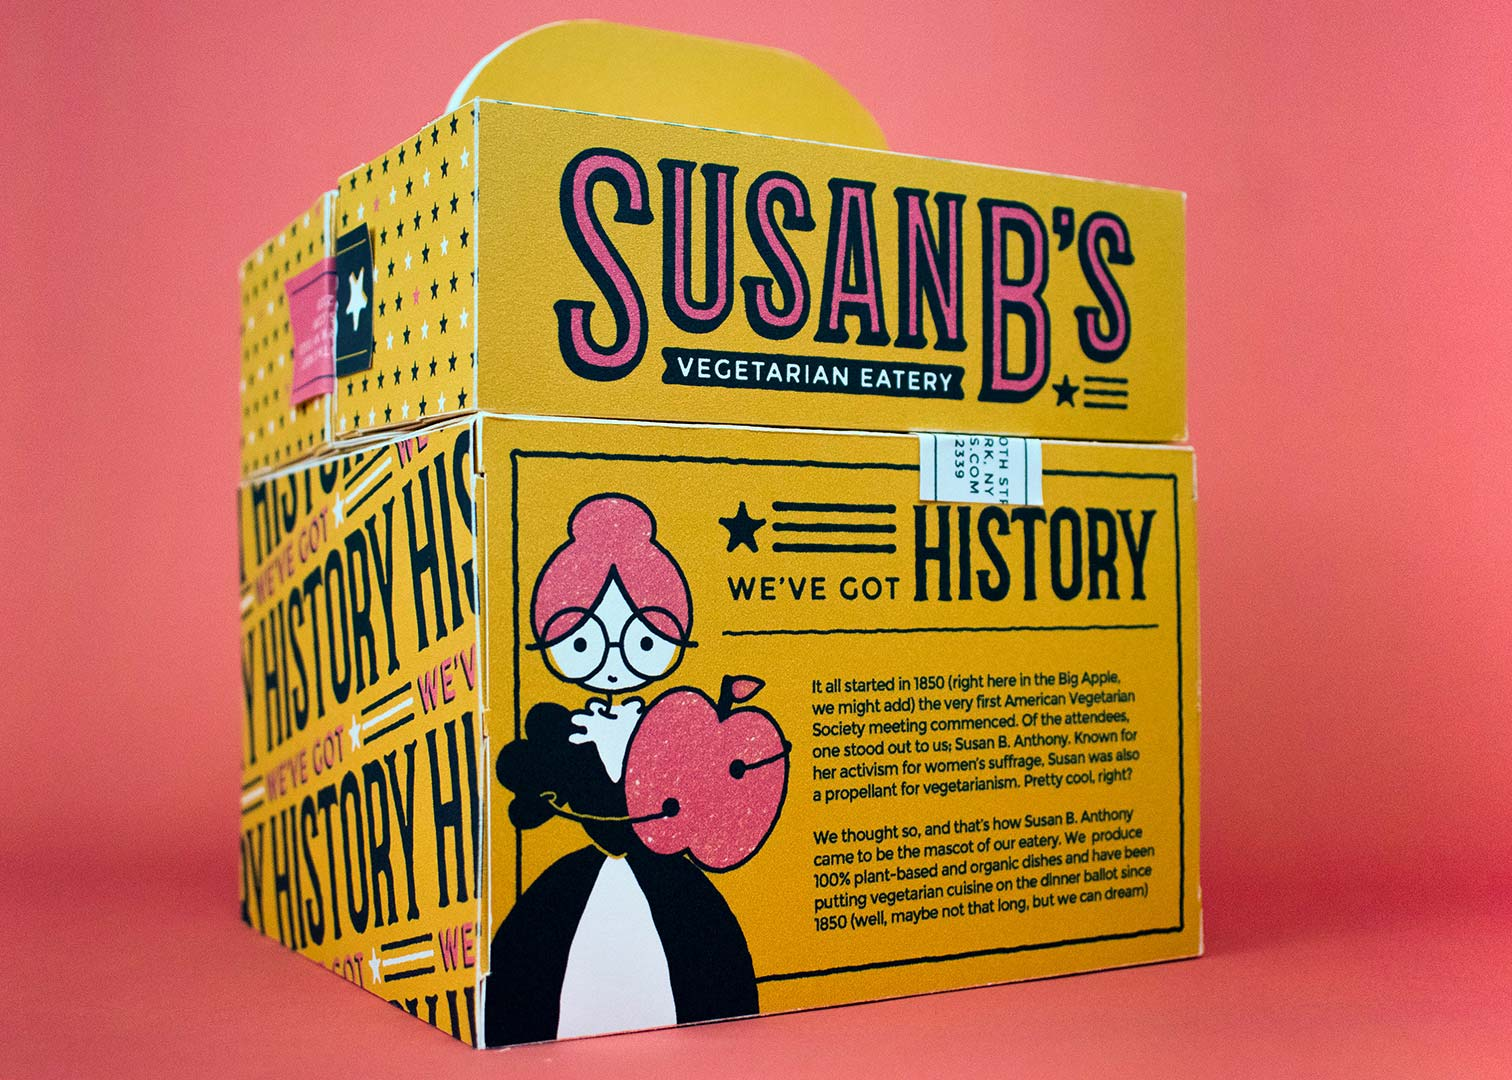 Susan B's Product Shot & History Text